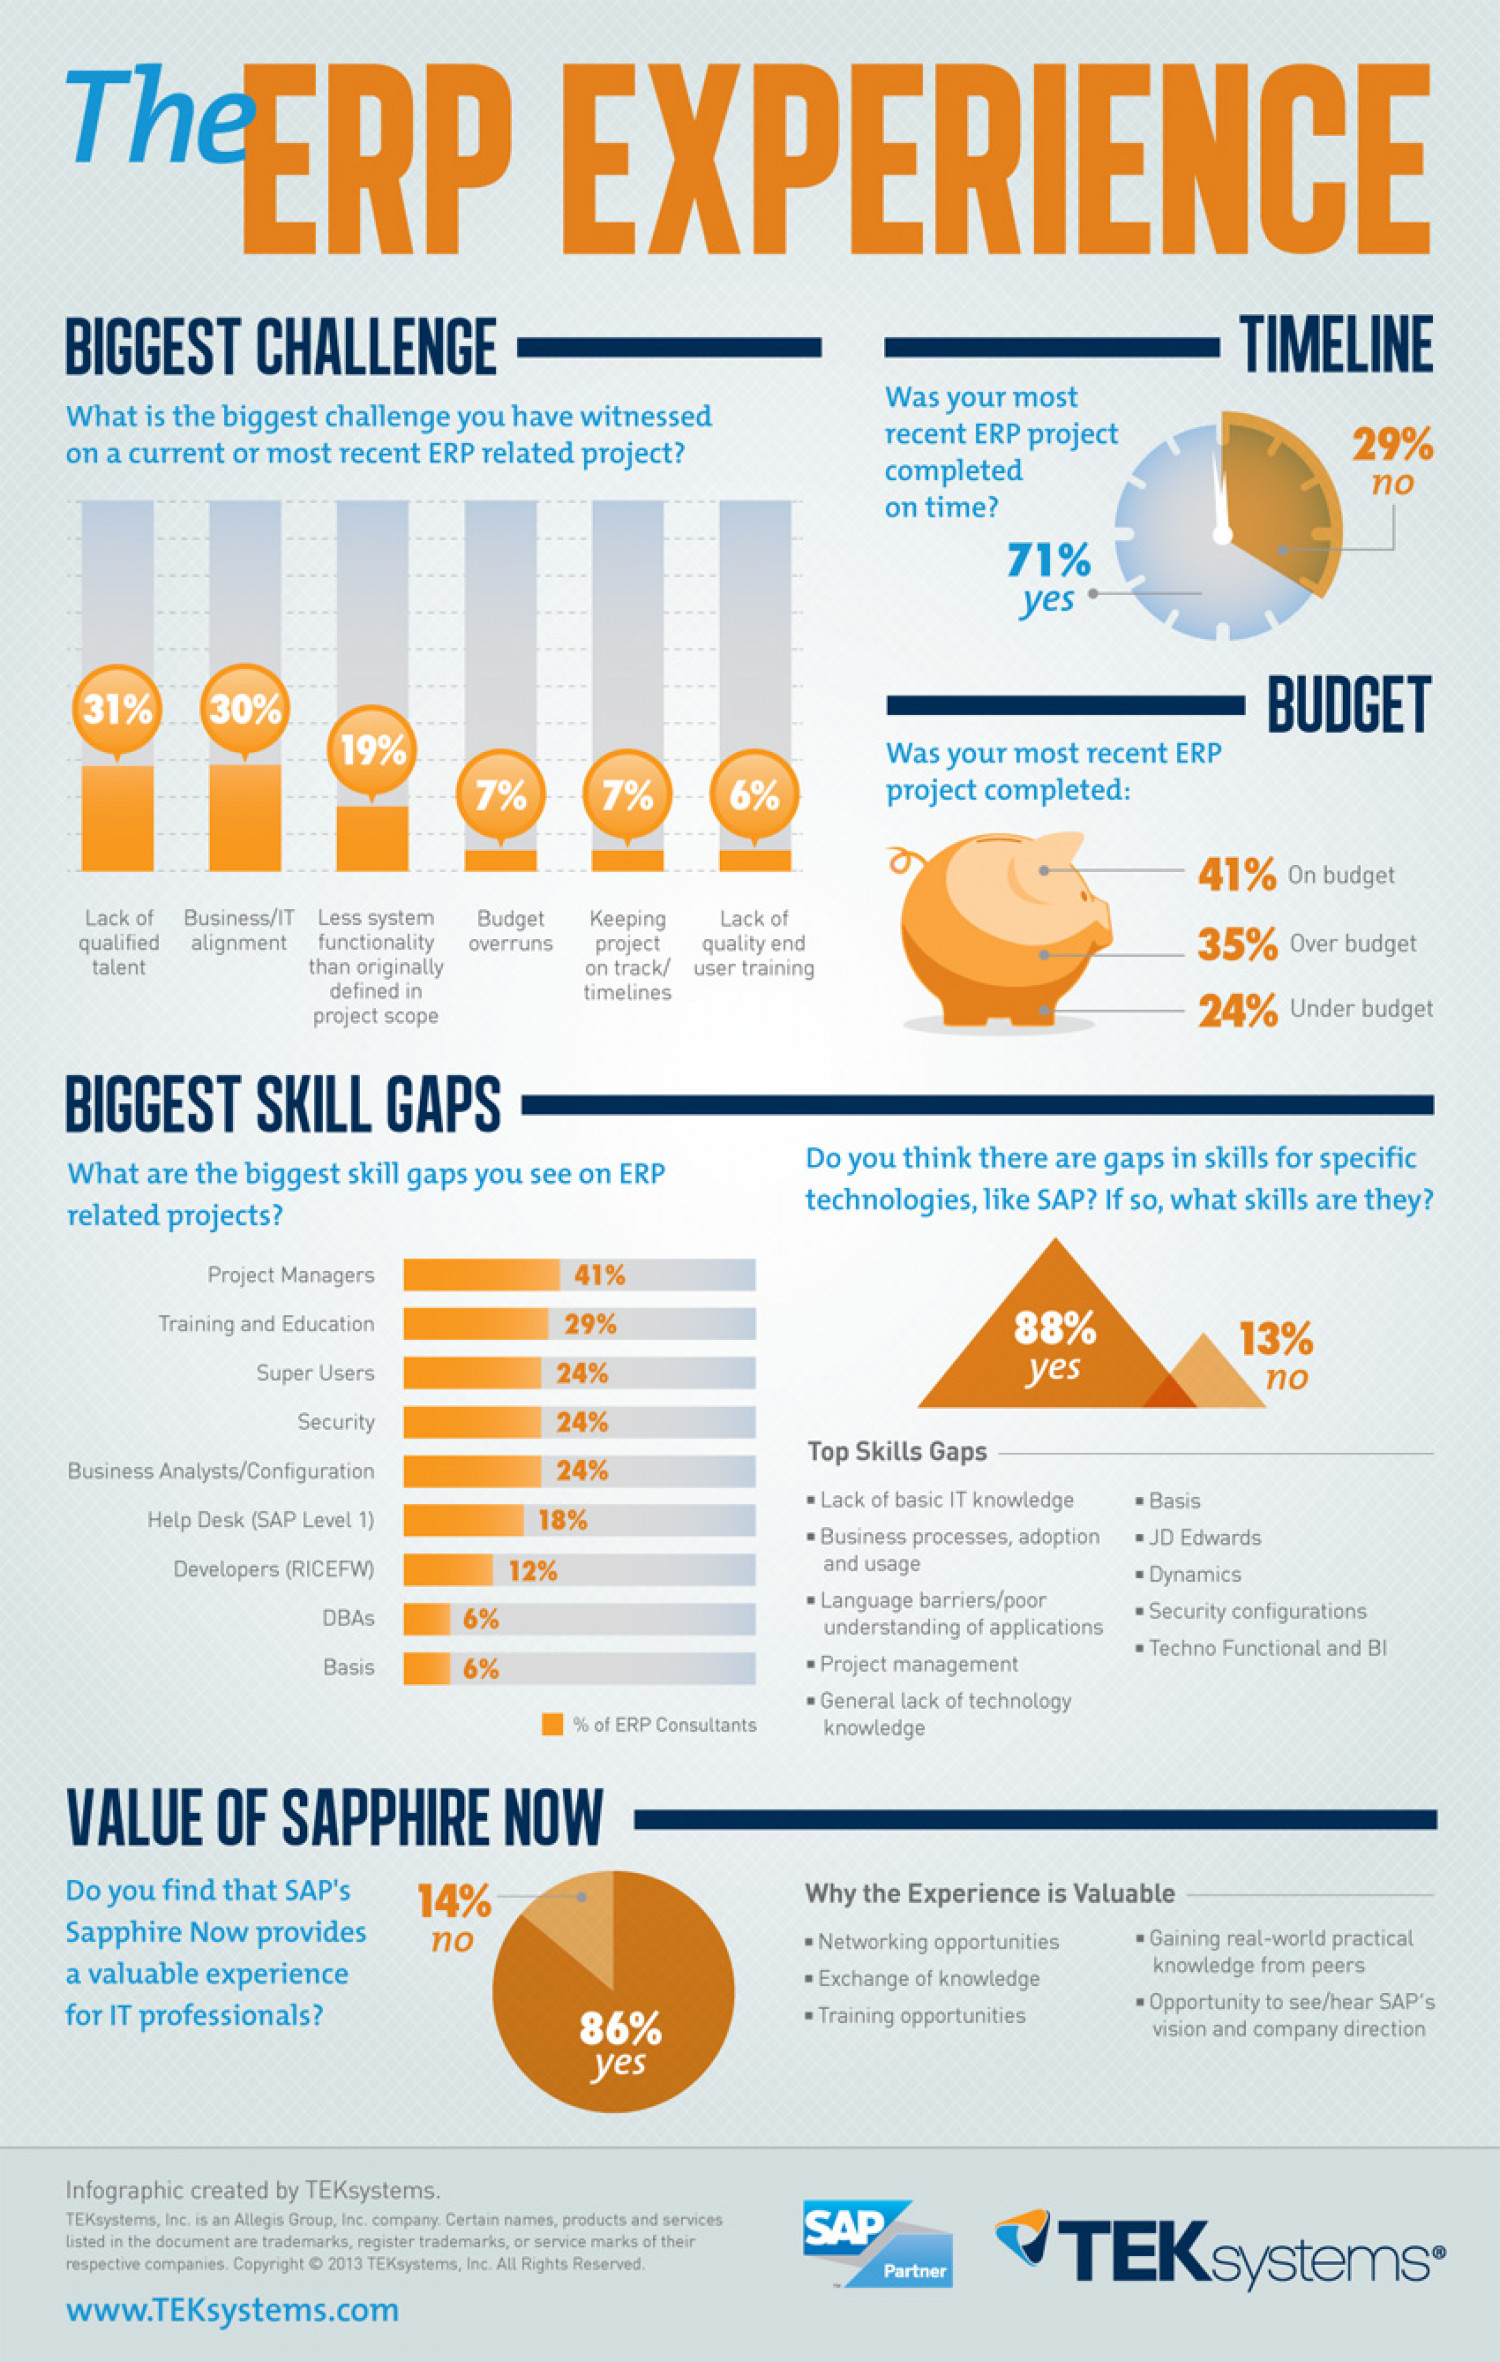 The ERP Experience Infographic